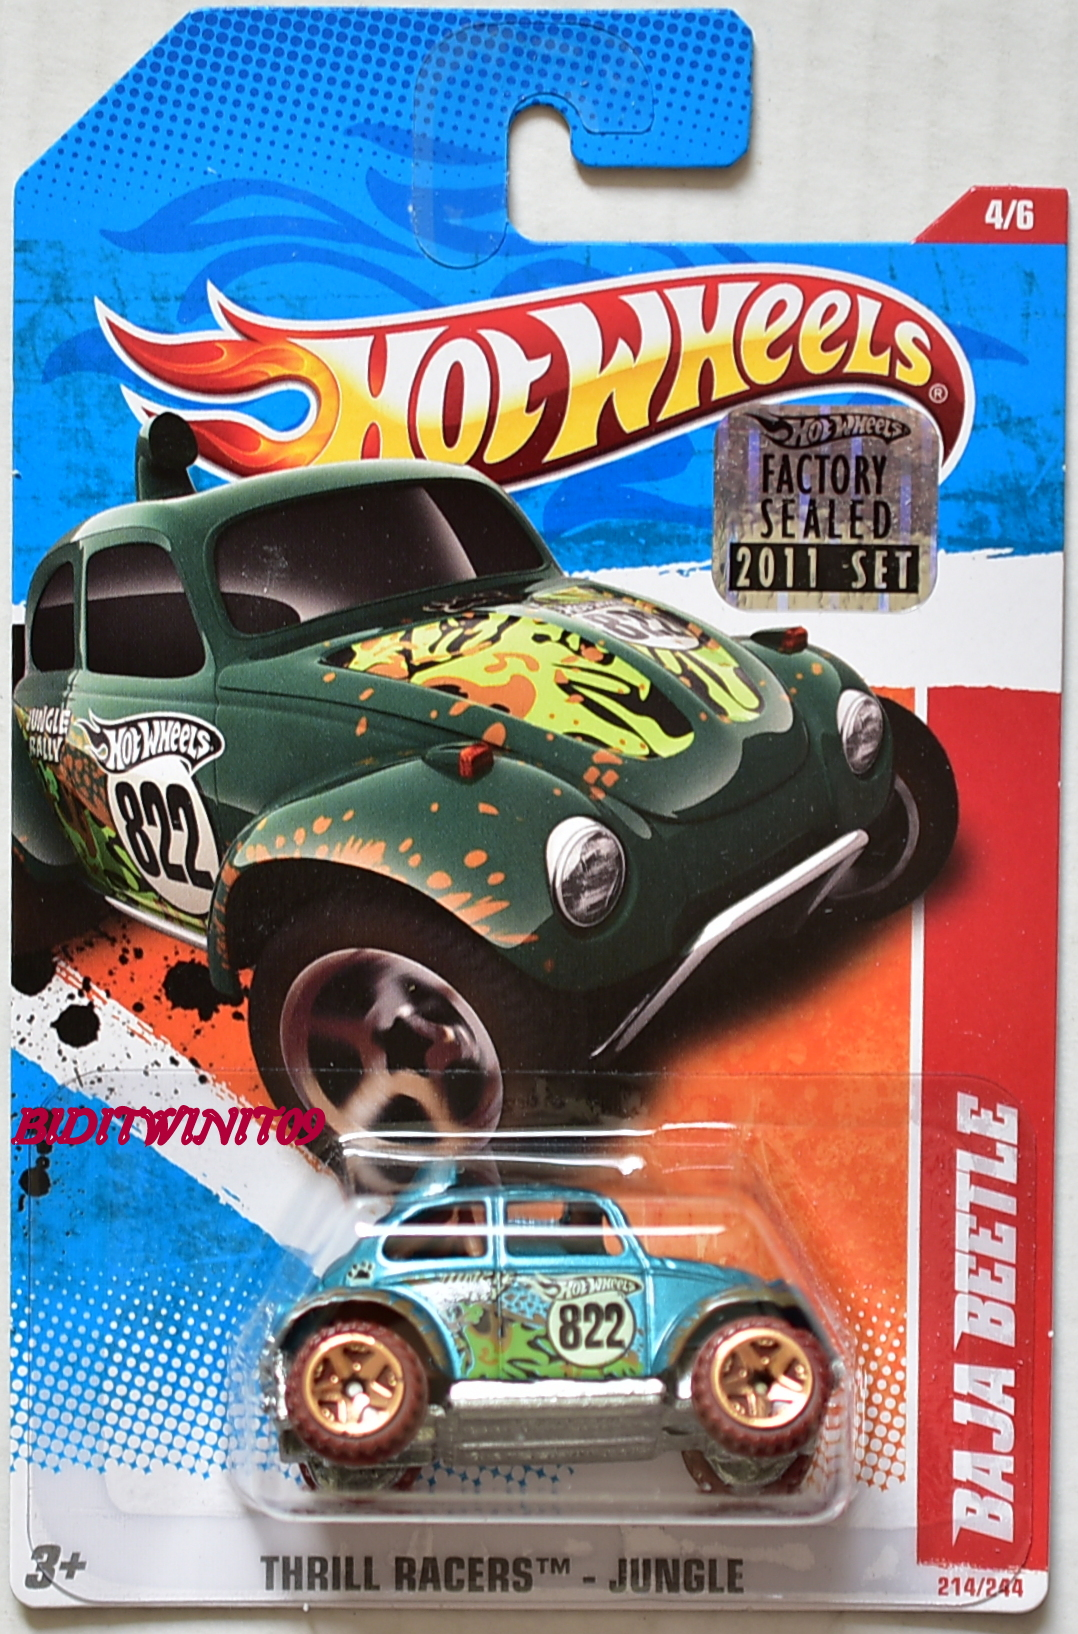 HOT WHEELS 2011 THRILL RACERS - JUNGLE BAJA BEETLE #4/6 TURQUOISE FACTORY SEALED